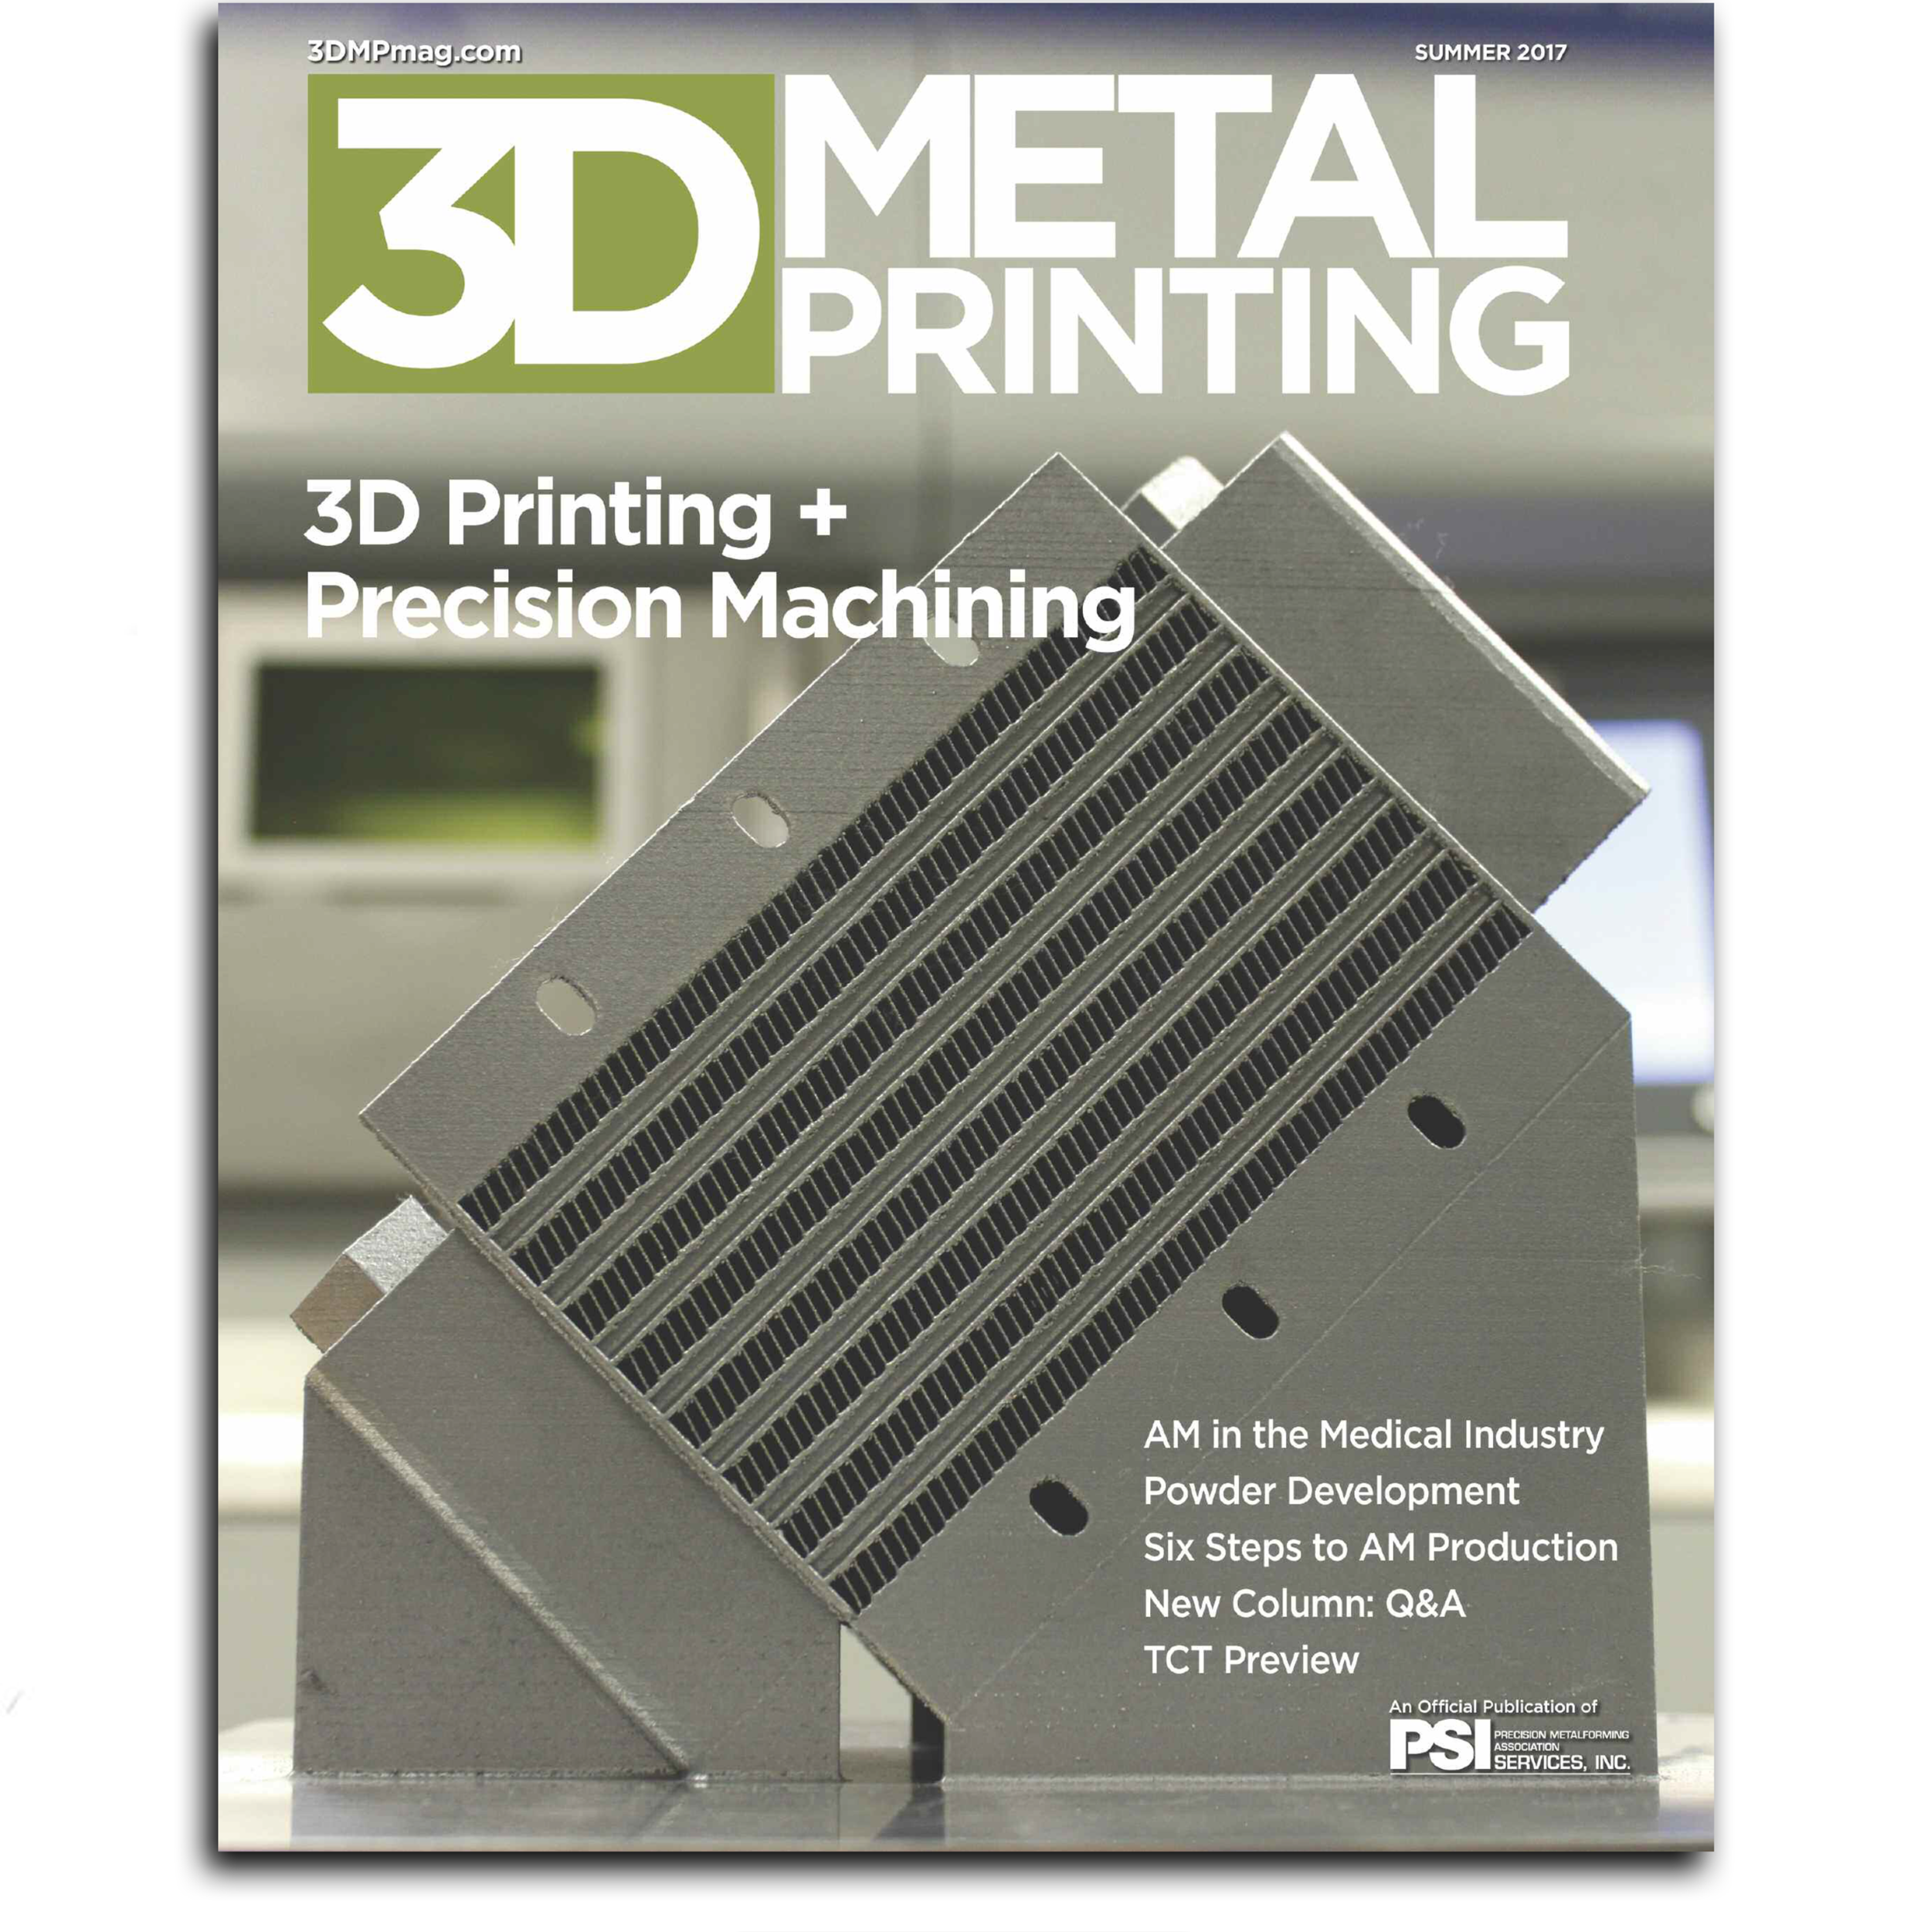 Top Chop and Shadow - 3D Metal Printing Magazine Cover - Imperial Feature Summer 2017.png